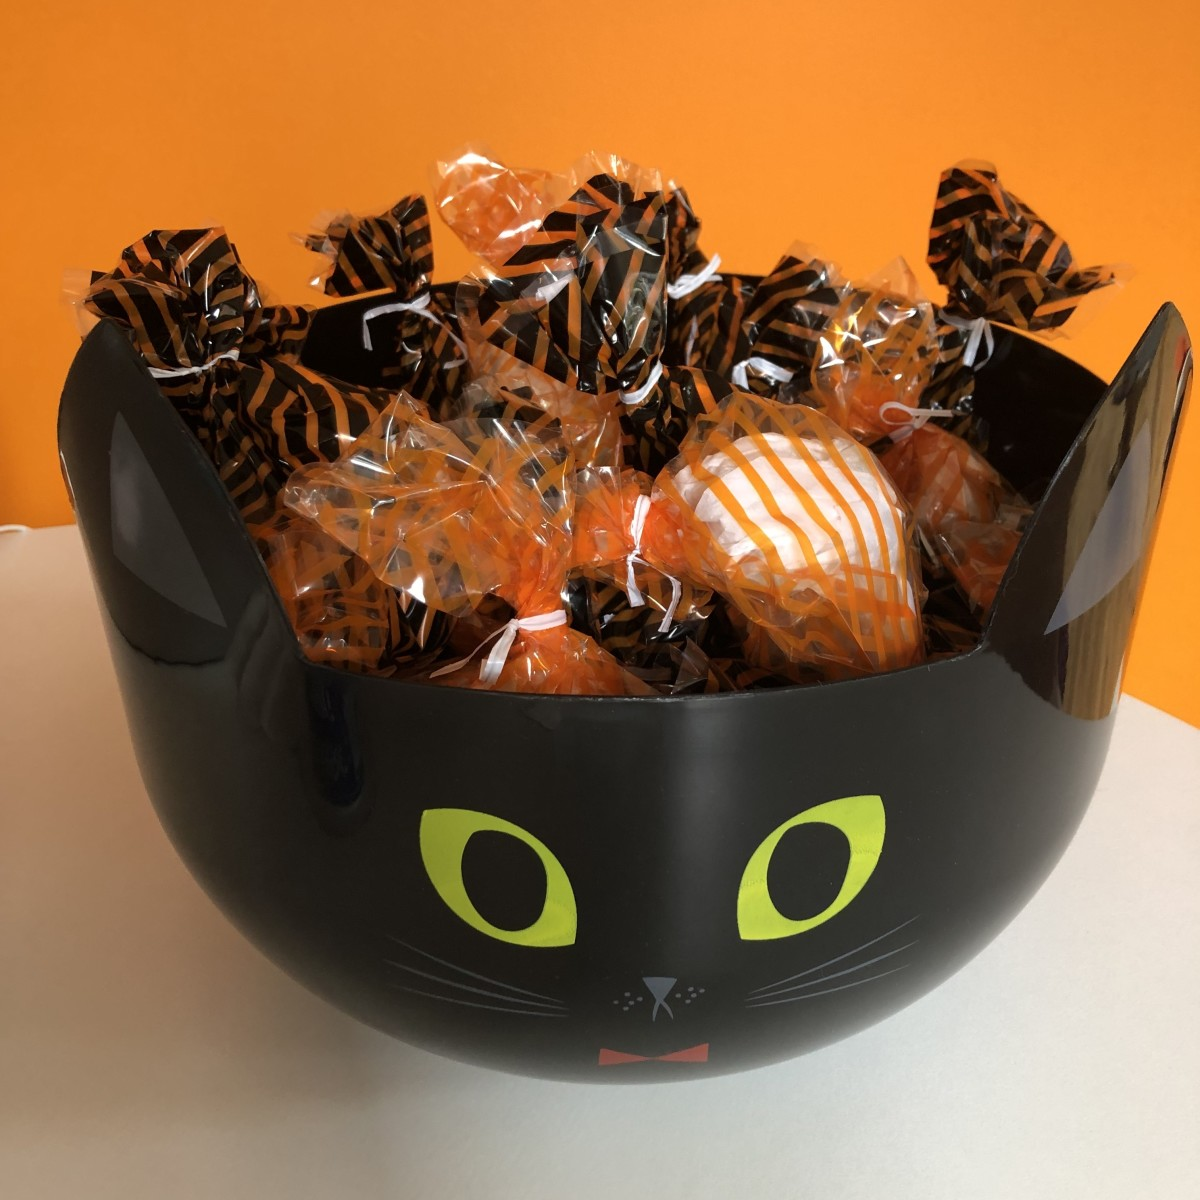 After several years of offering trick-or-treaters a choice, they now receive a pre-filled treat bag with three items.